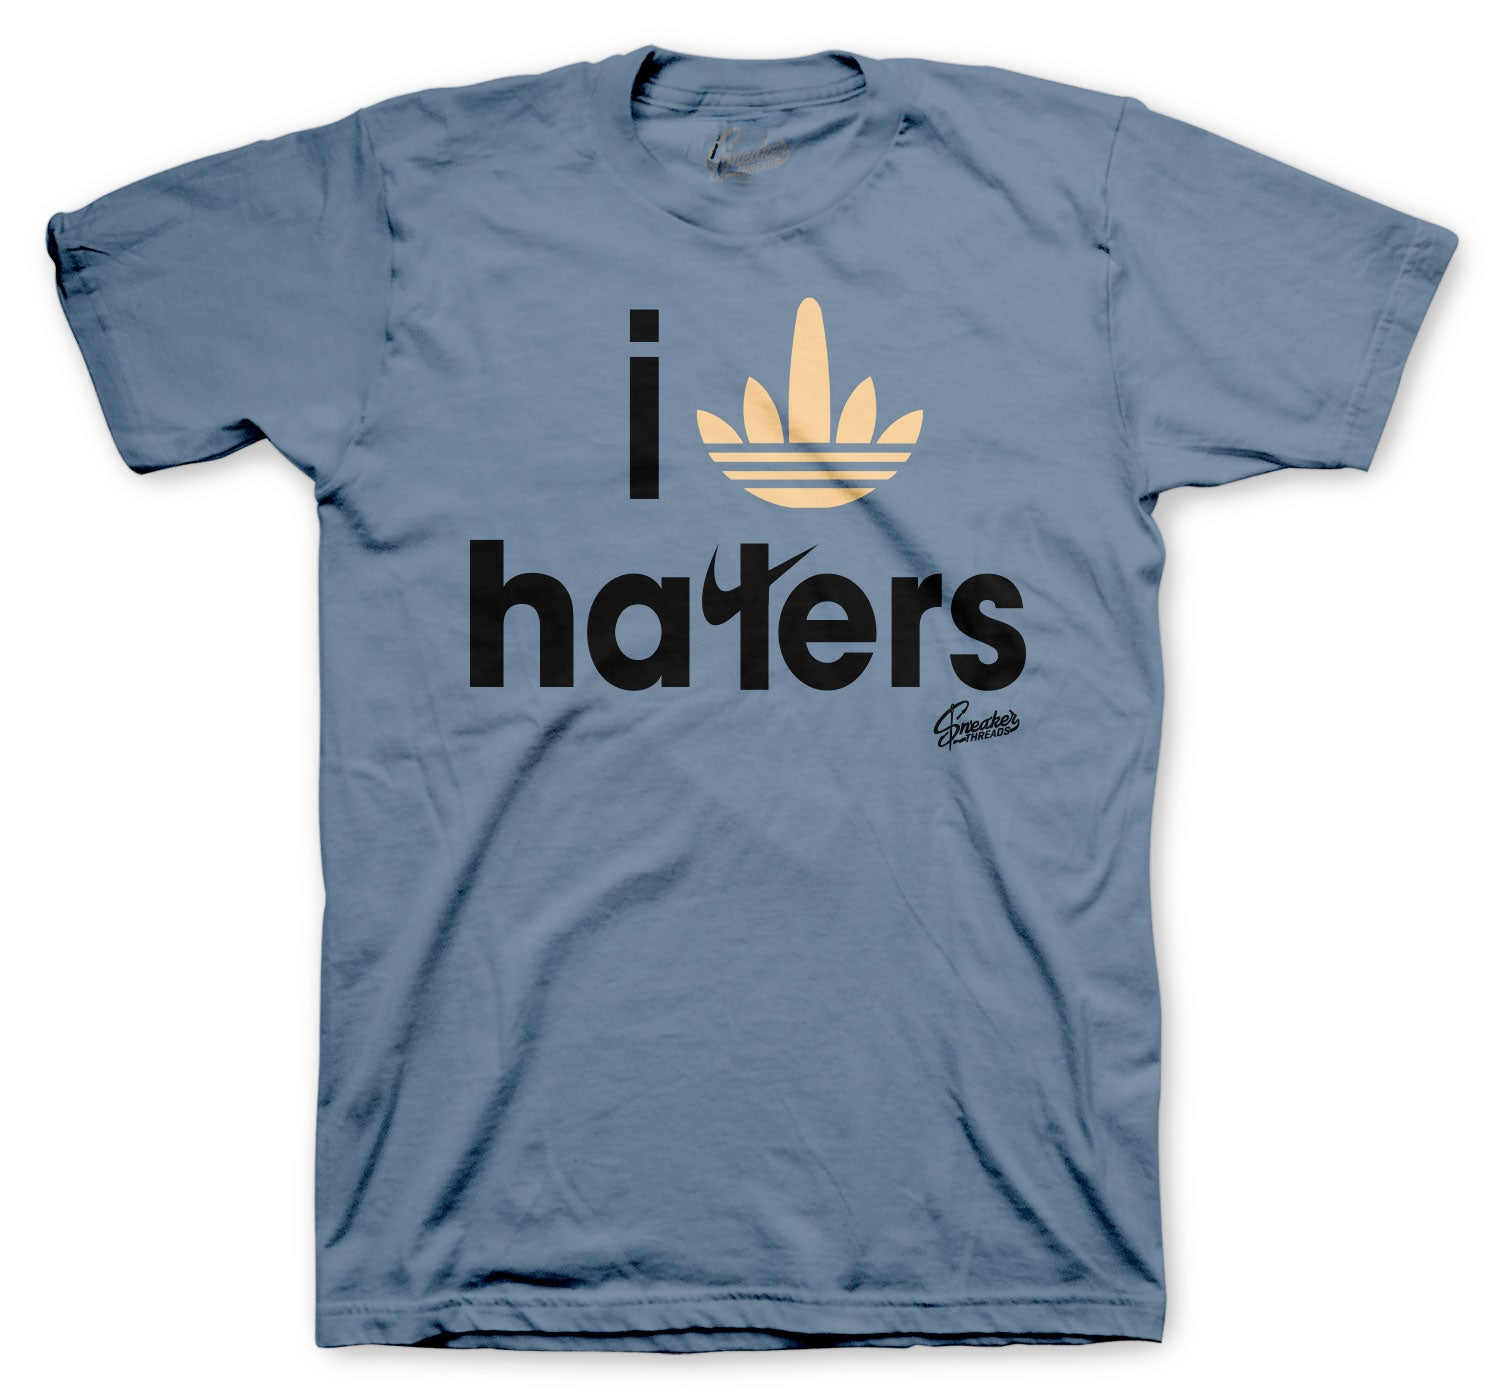 Yeezy Ash Blue 350 Shirt - Haters - Blue